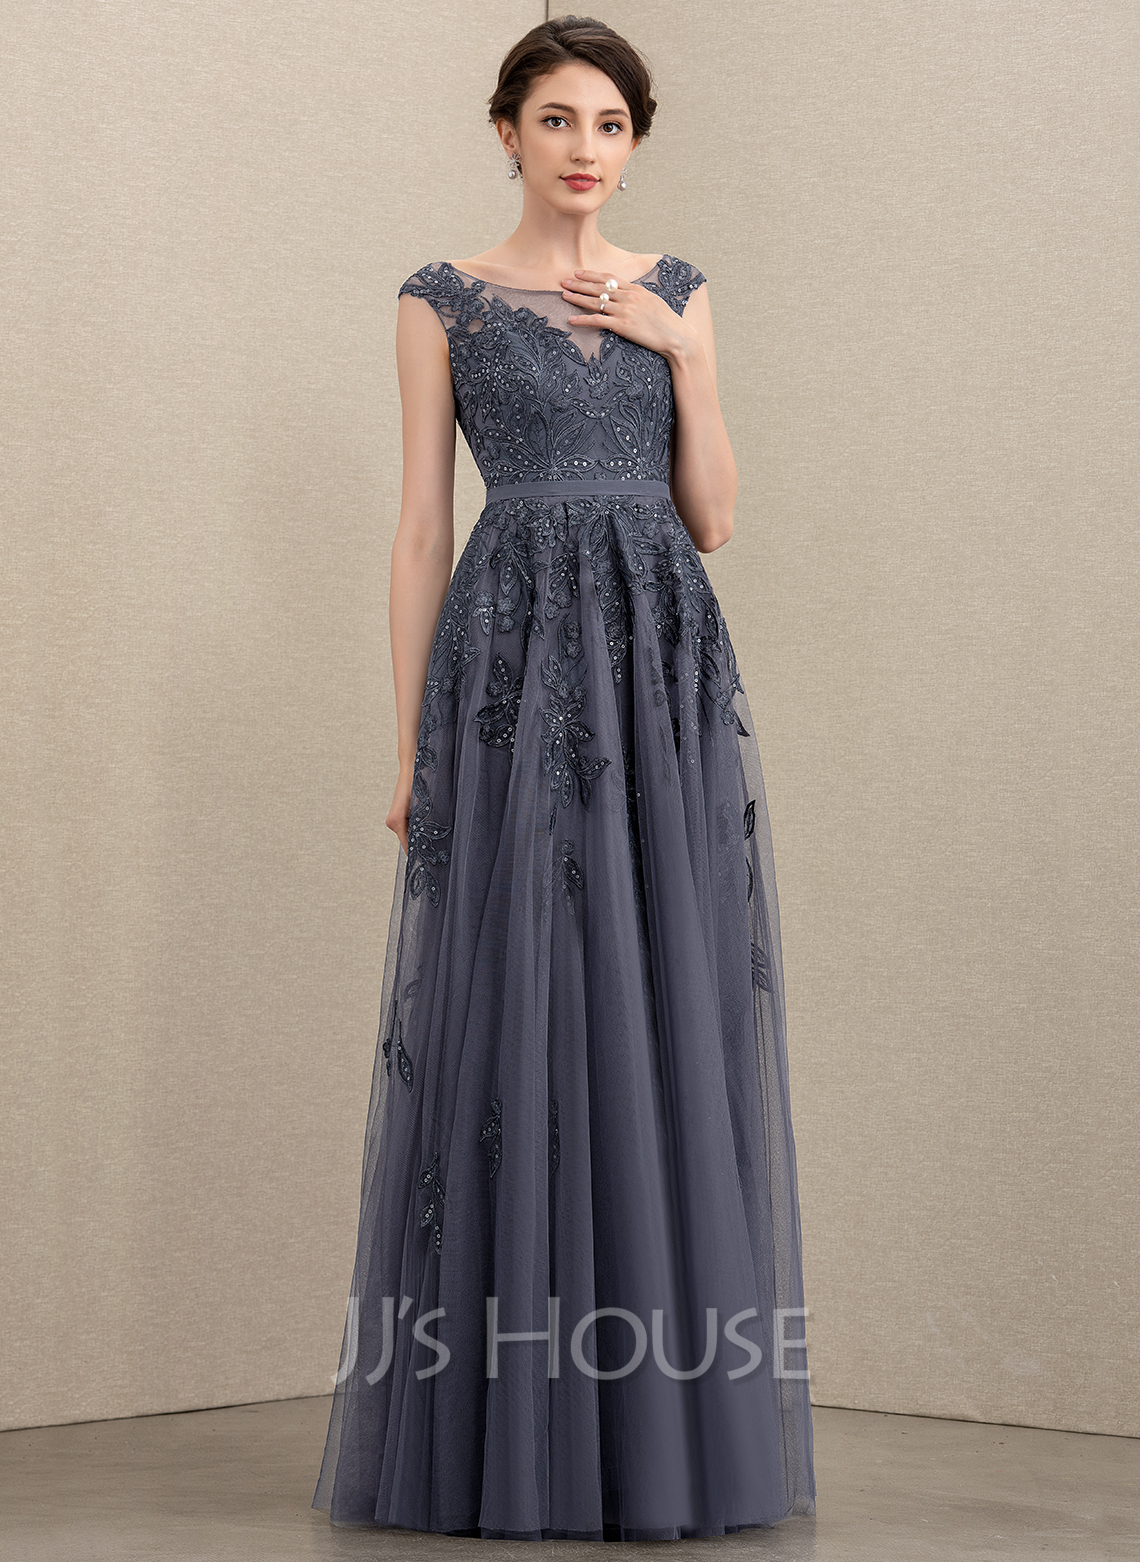 A-Line Scoop Neck Floor-Length Tulle Lace Mother of the Bride Dress With Sequins